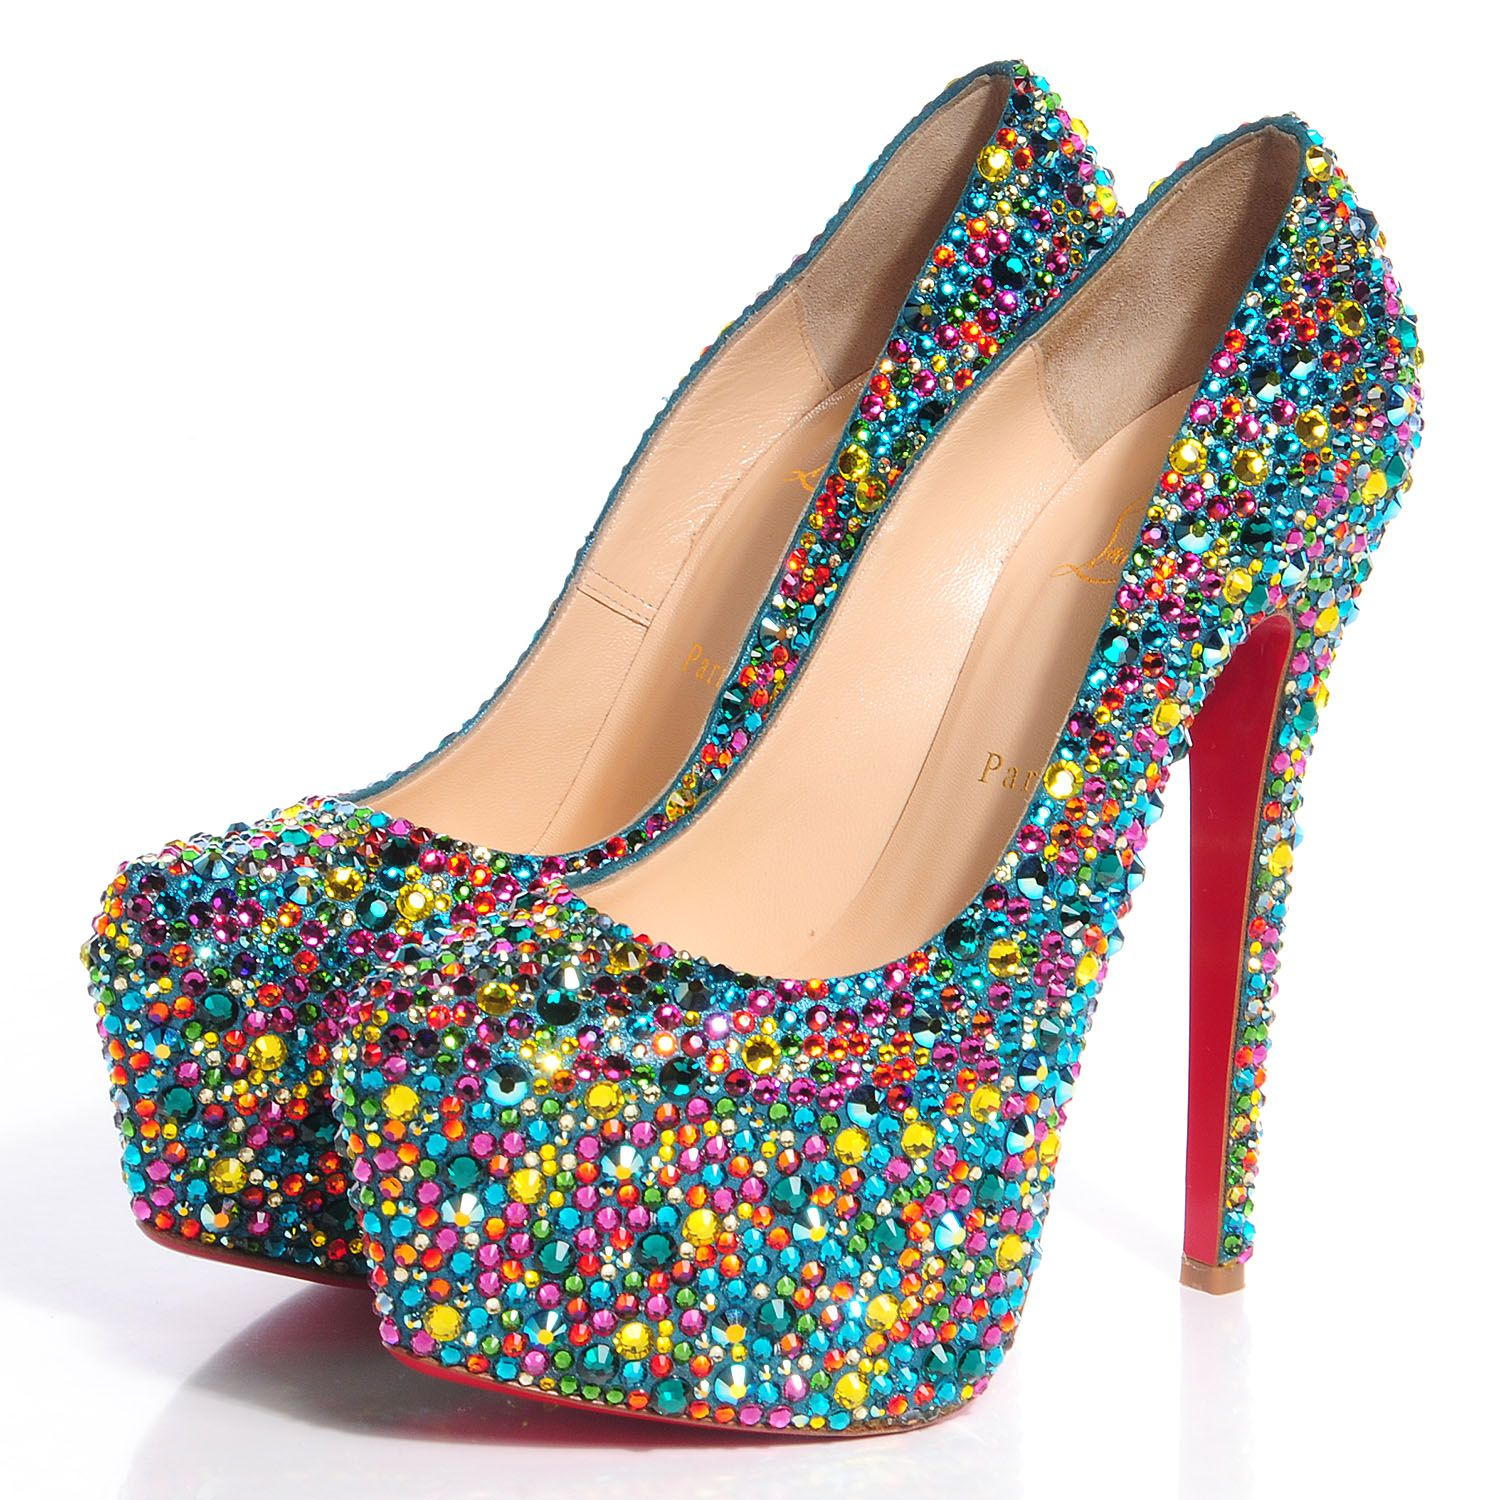 christian louboutin deals and steals